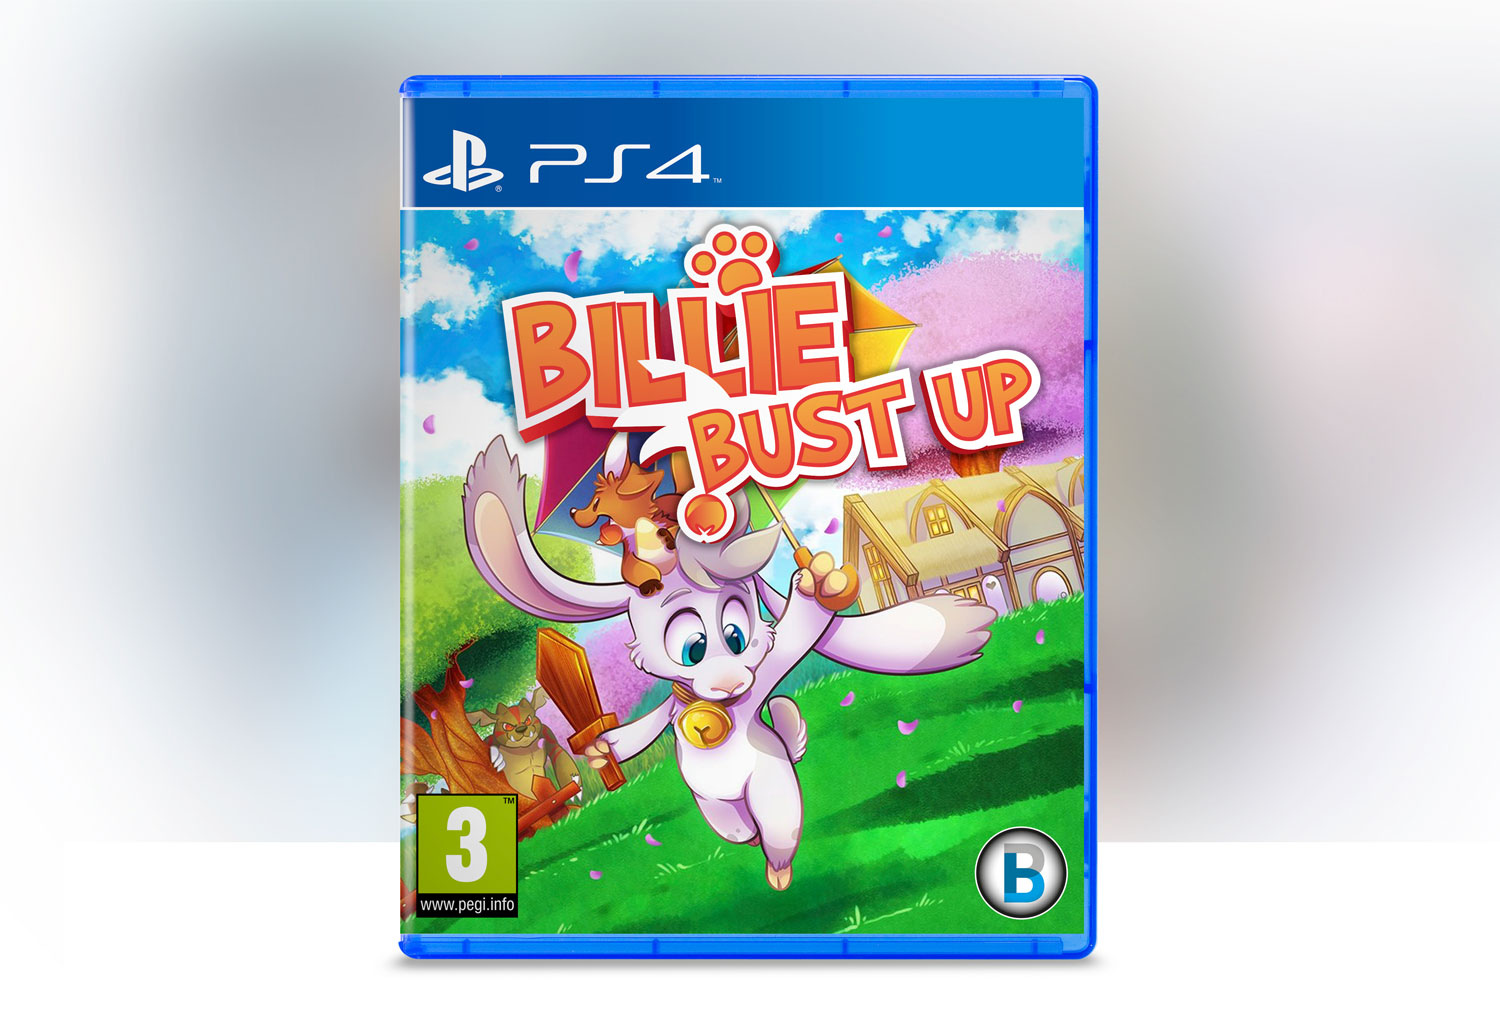 Bilile Bust Up | Indie Game Logo Mock Up for Billie Bust Up